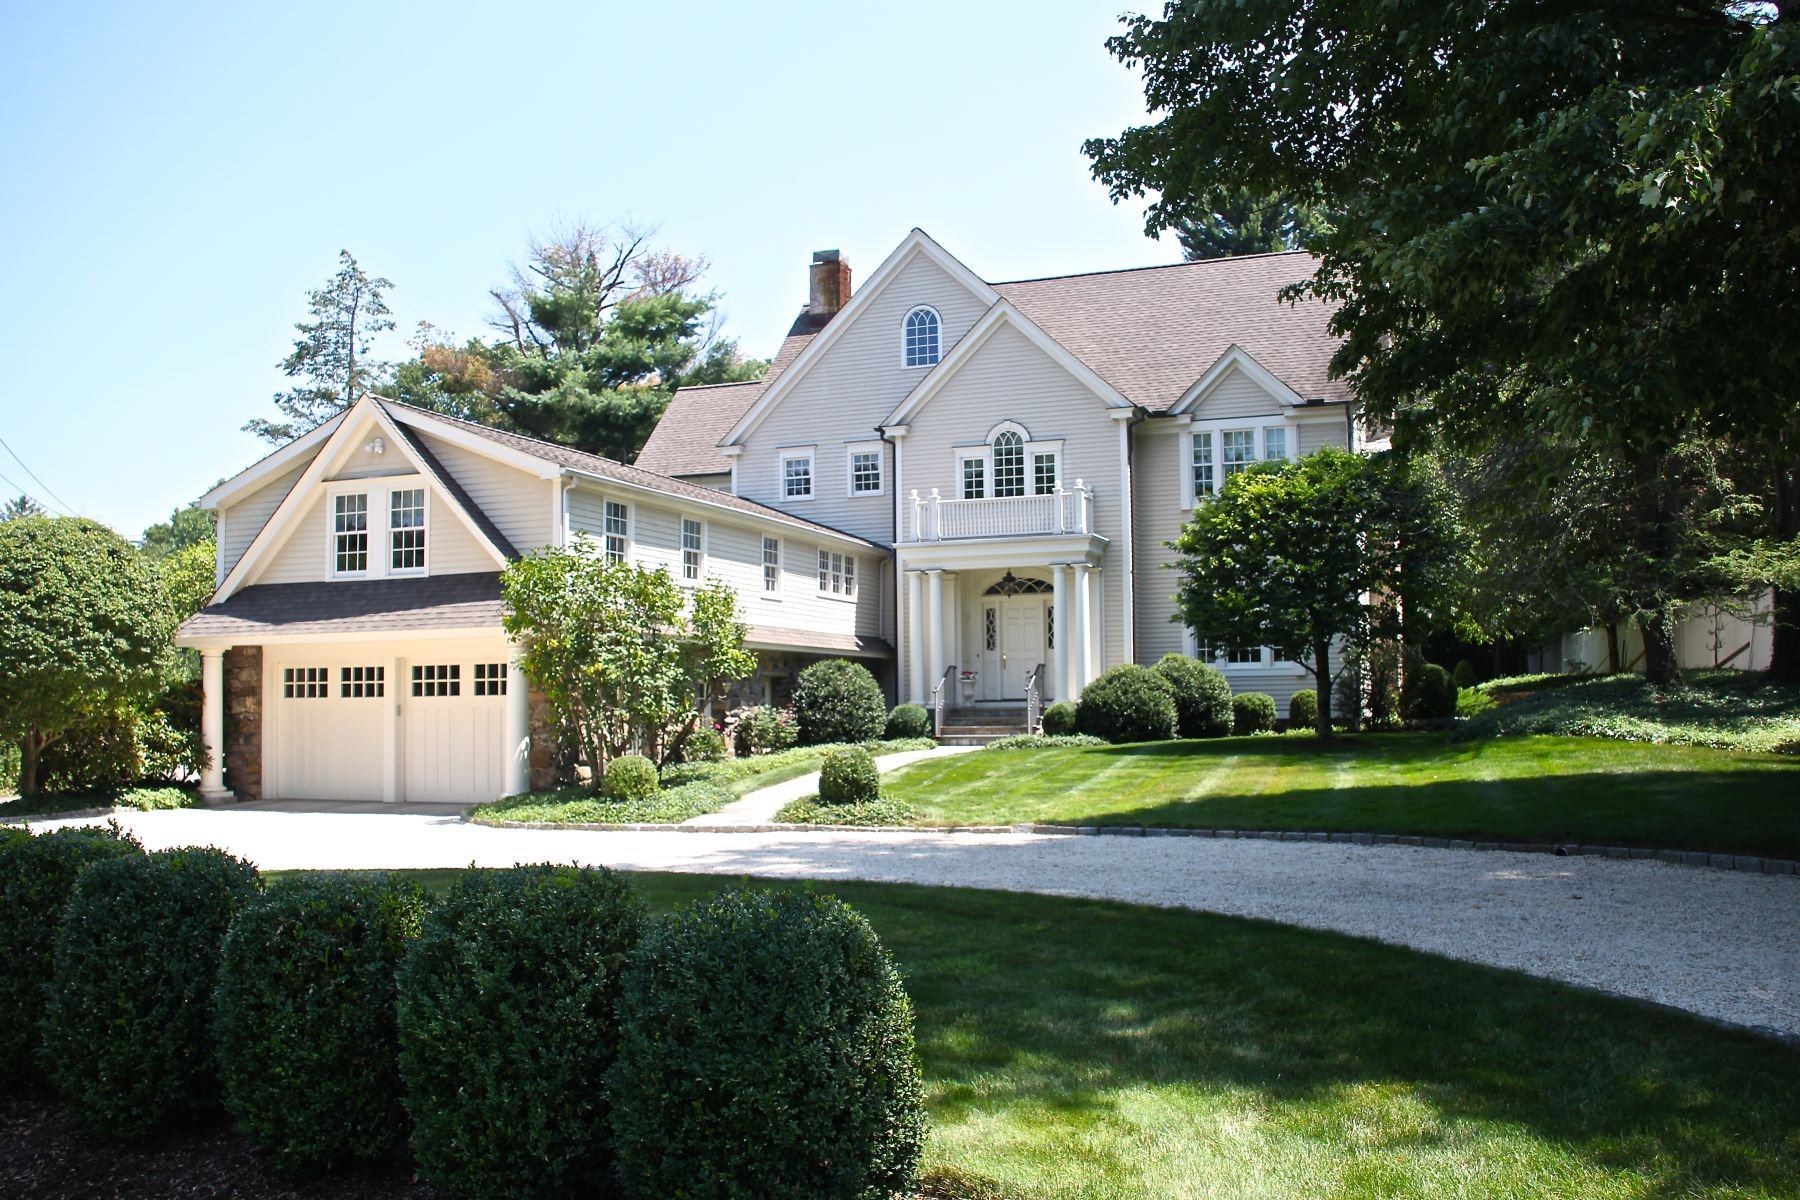 Single Family Homes for Sale at 17 Searles Road Darien, Connecticut 06820 United States